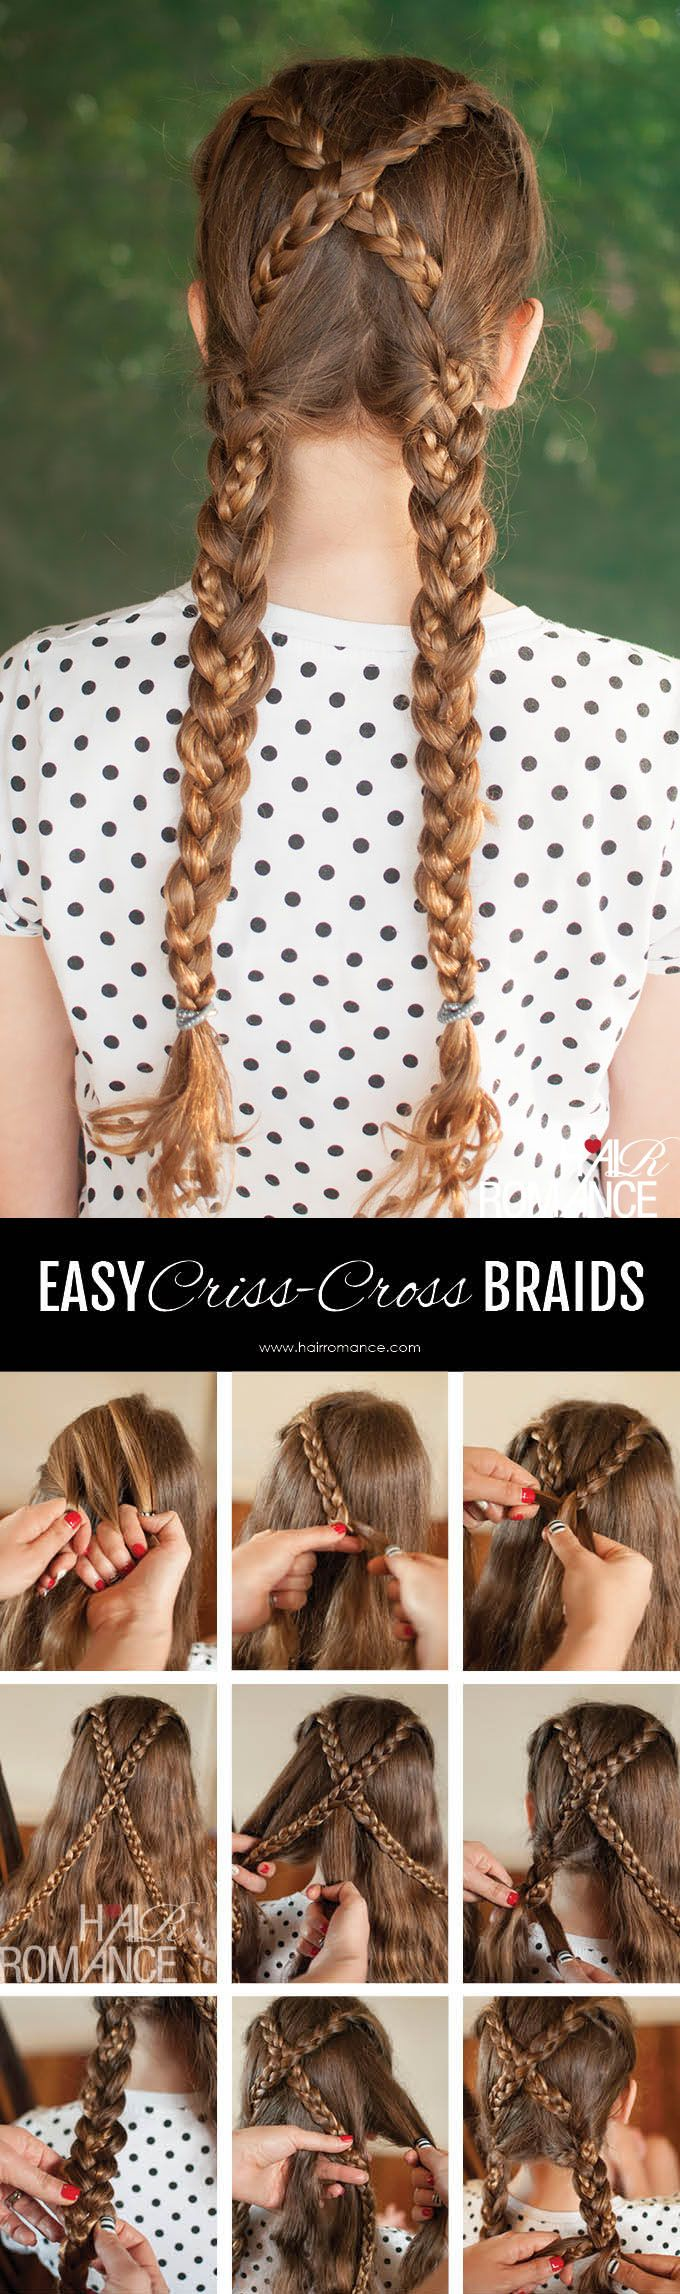 Hair Romance - Back to school hair - criss cross braids hairstyle tutorial